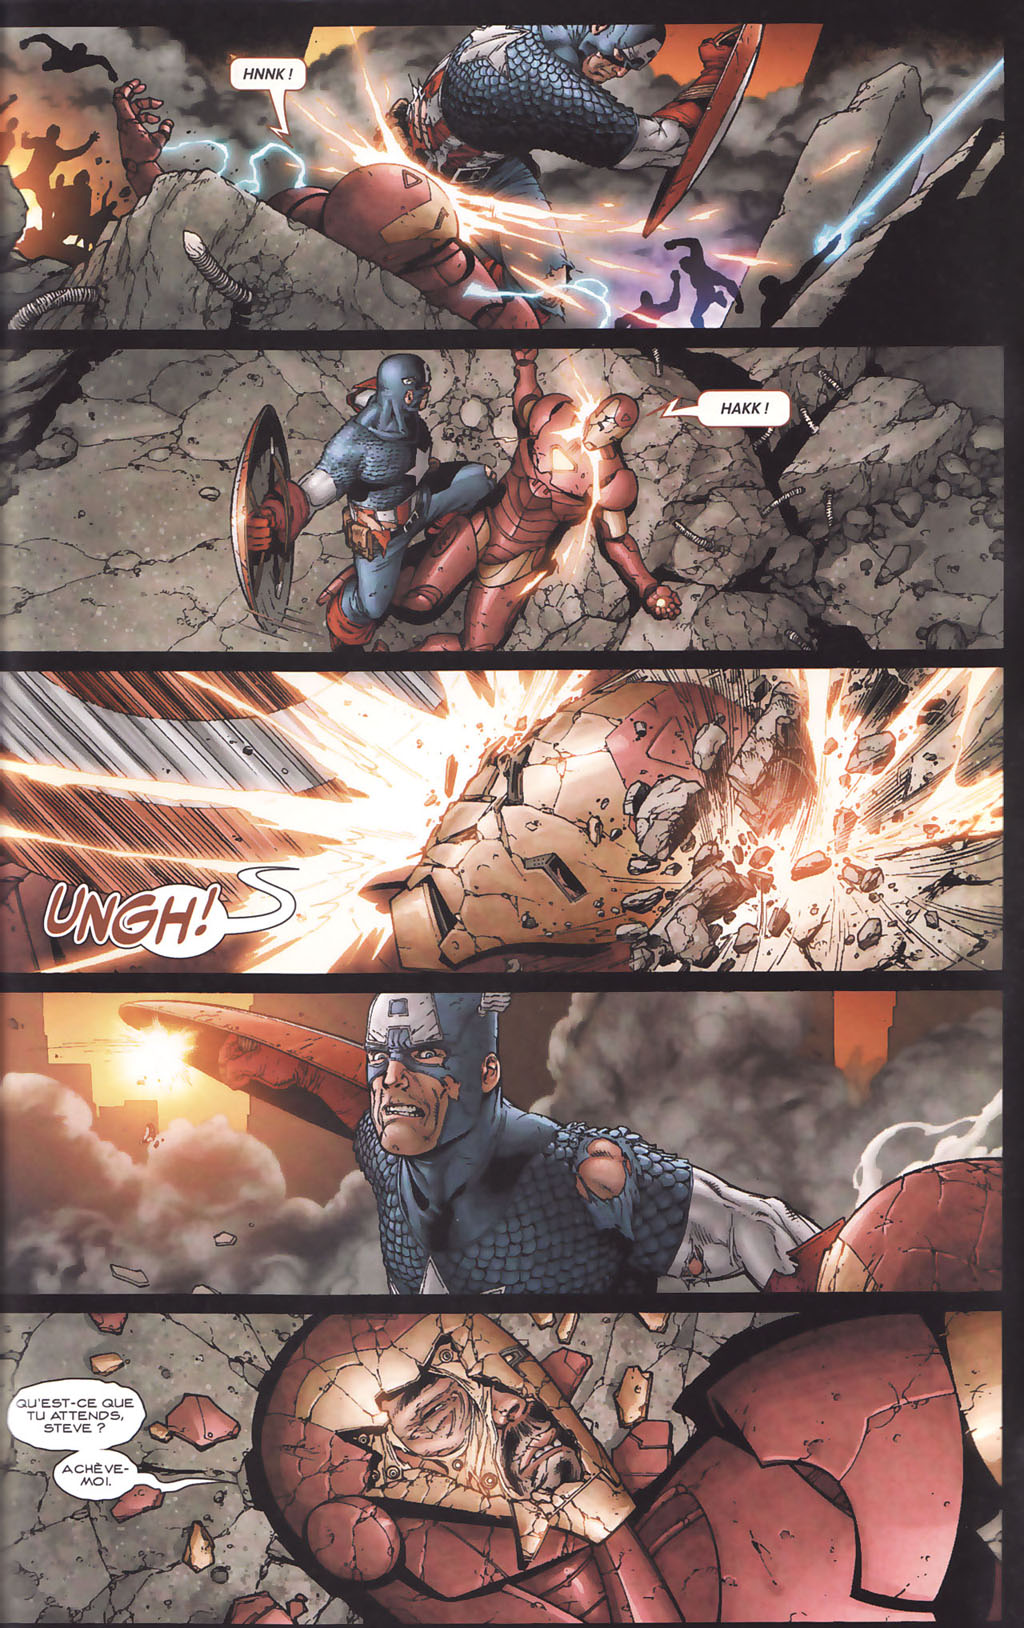 086 - Civil War 7 - 18